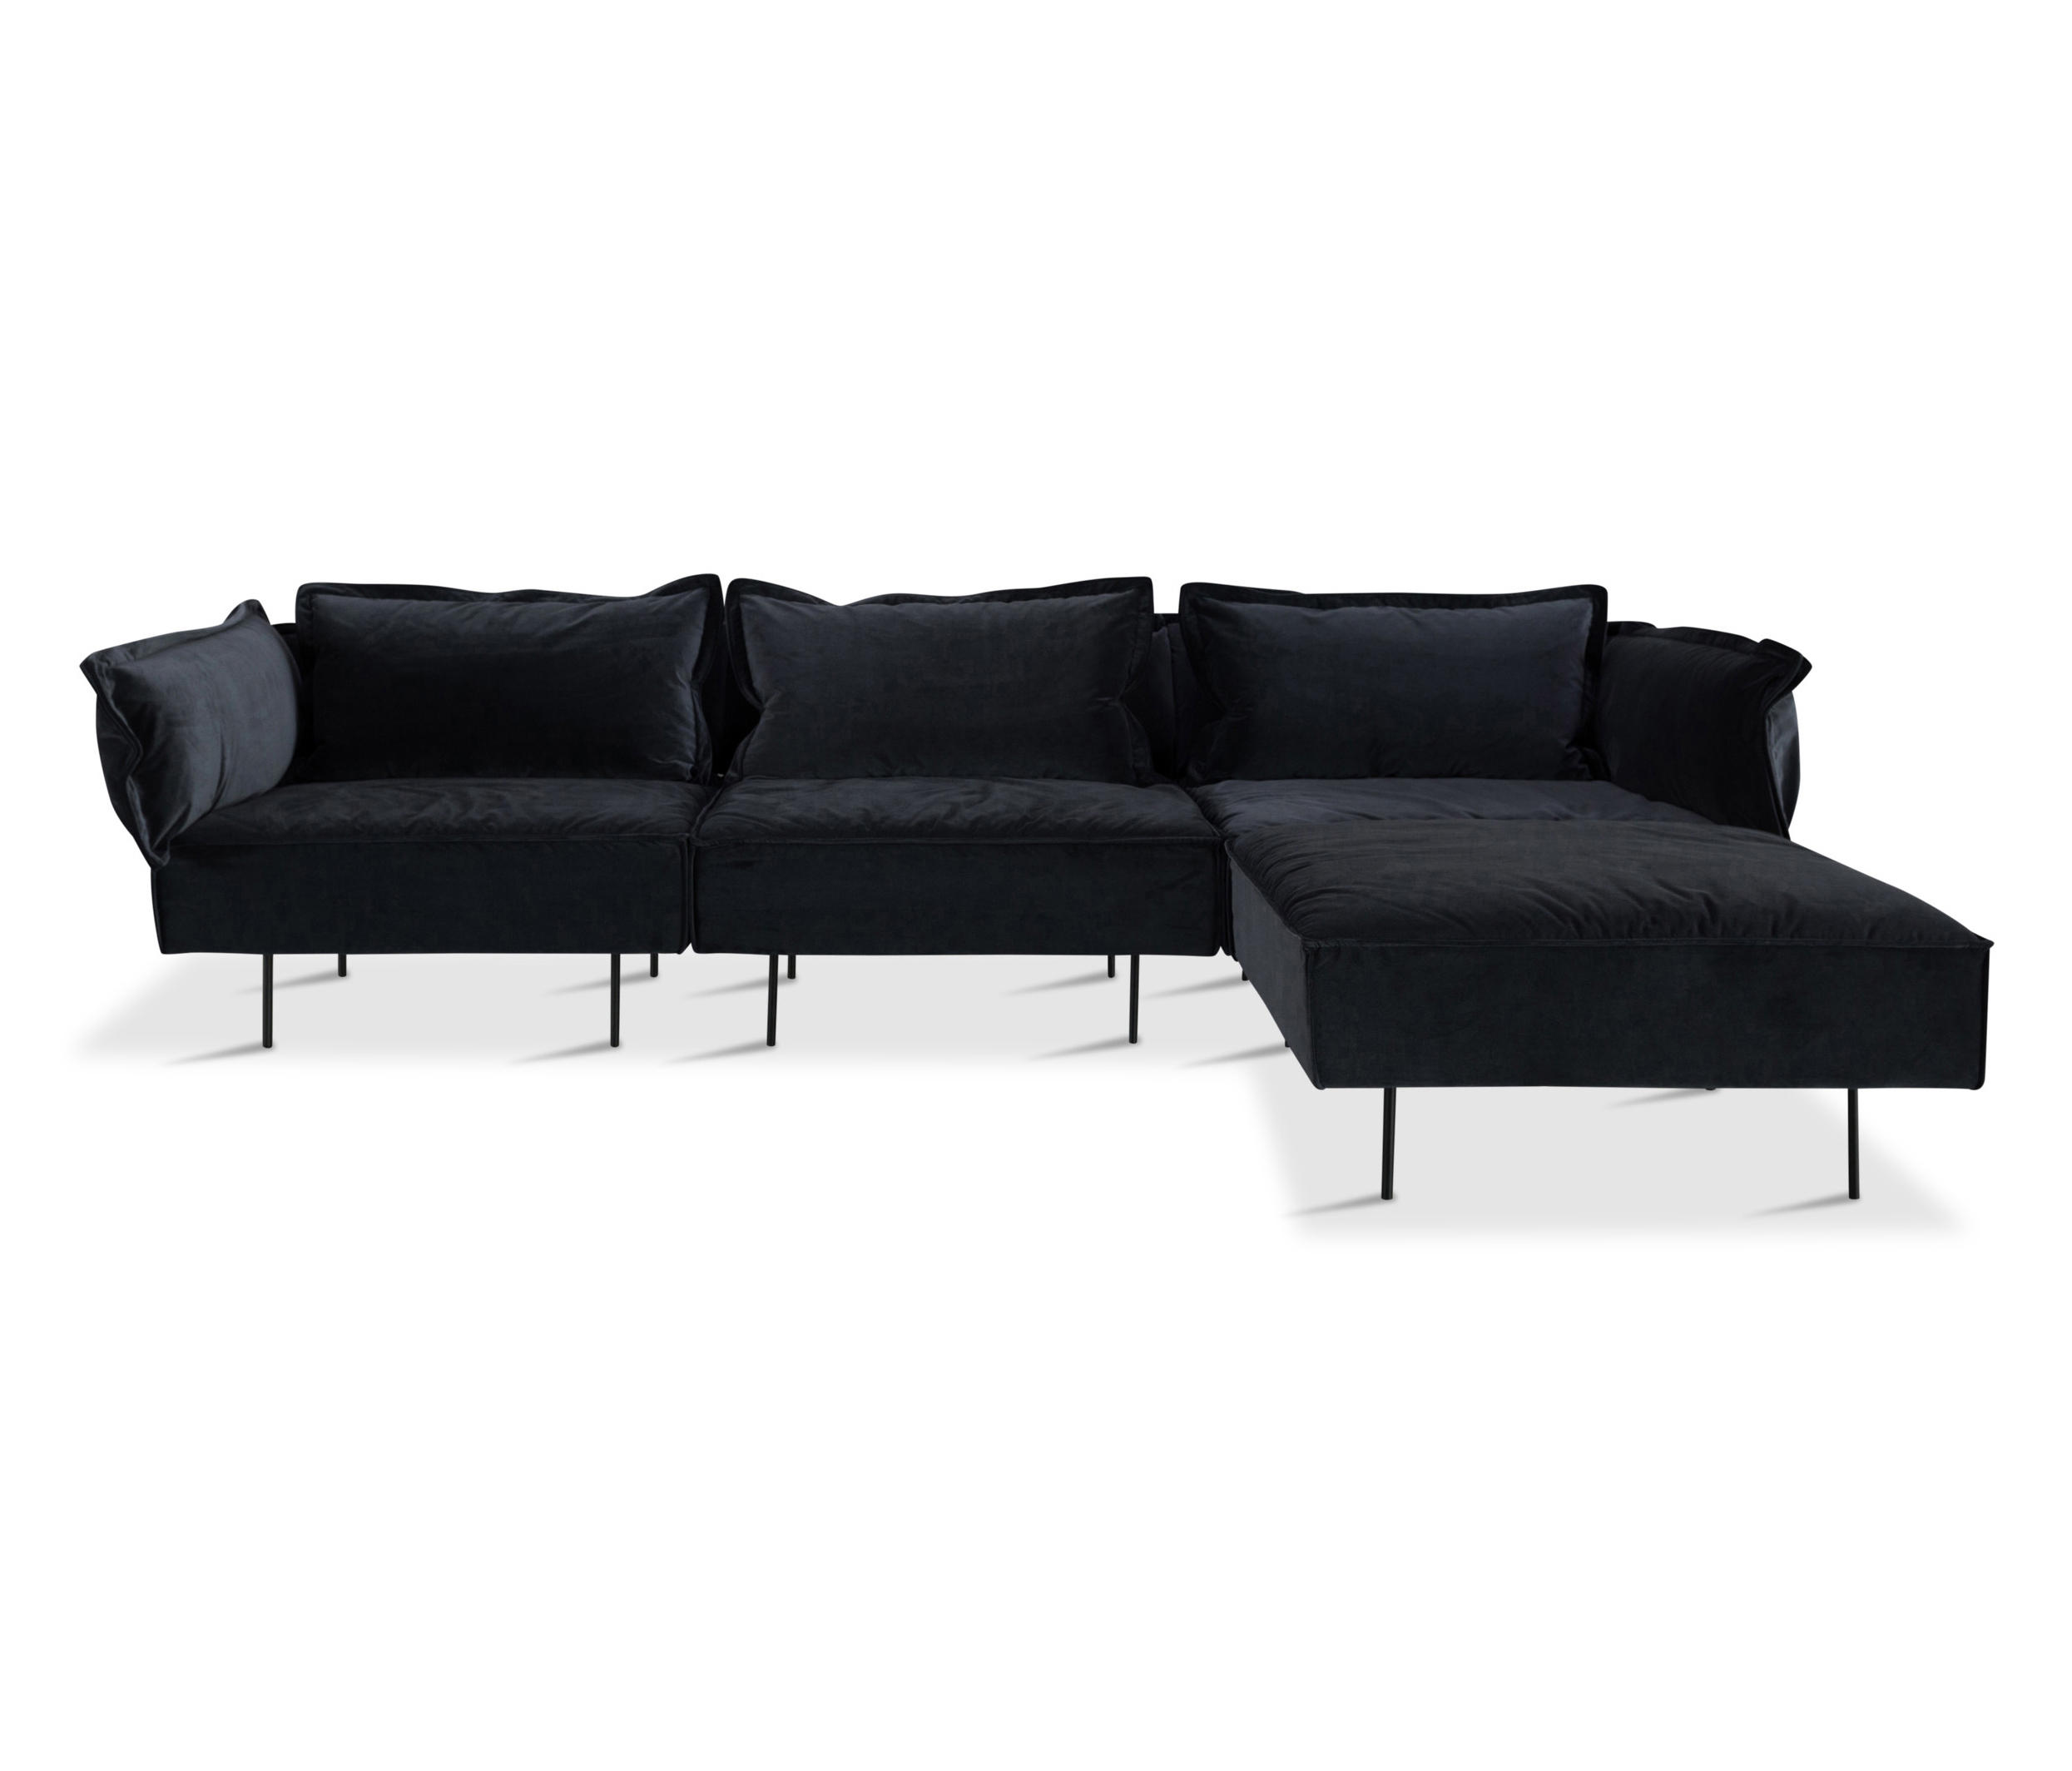 3 seat sofa with chaise dark grey sofas from handv rk for 3 seat chaise sofa